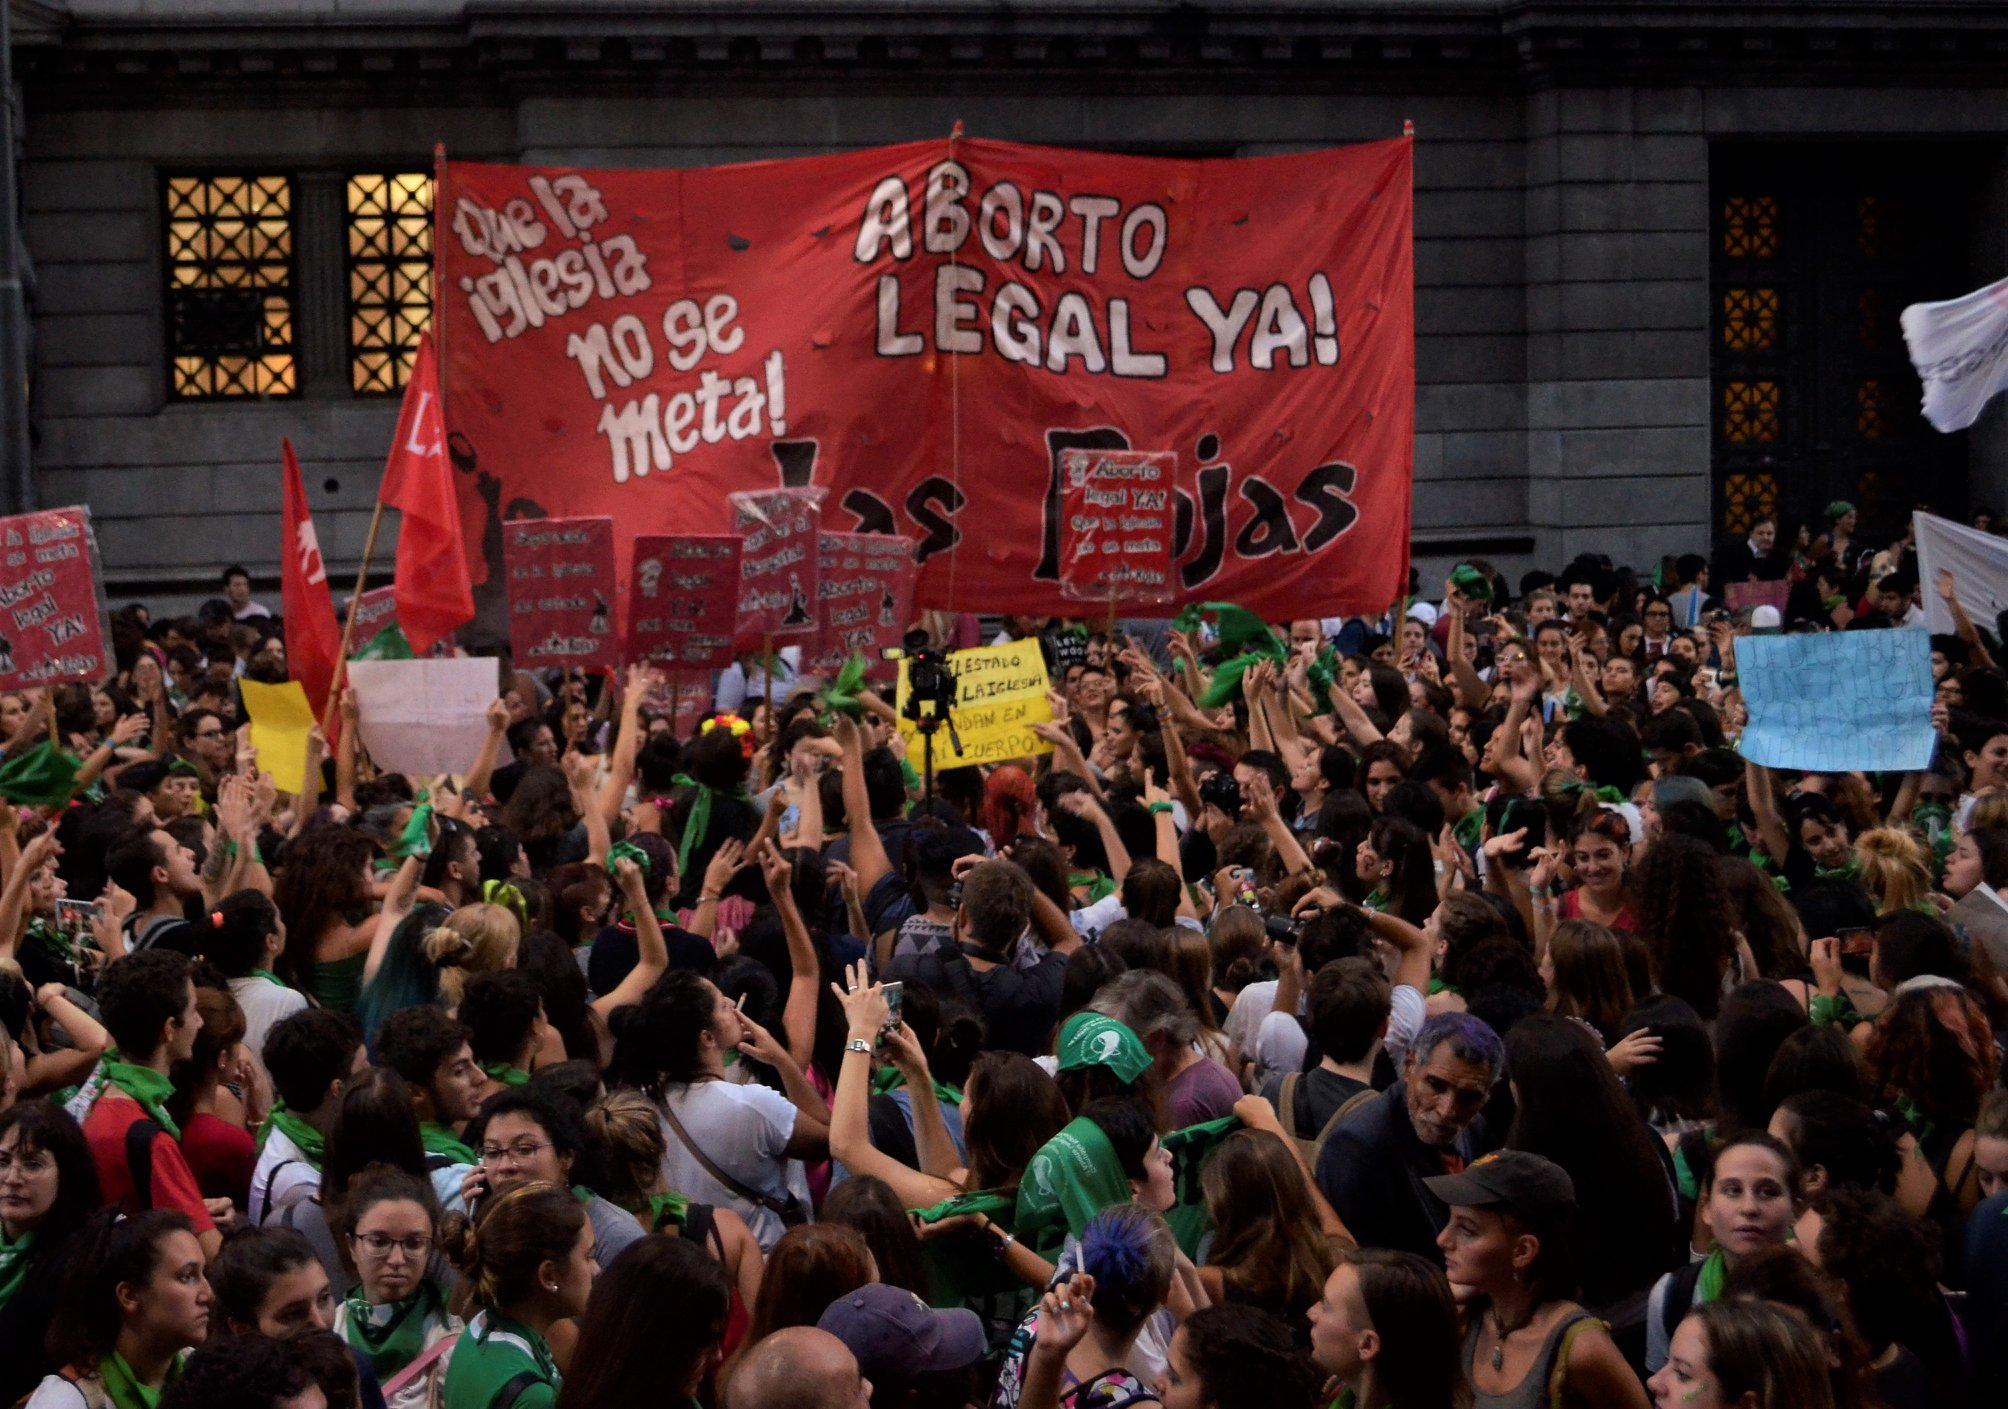 aborto legal debate en el congreso